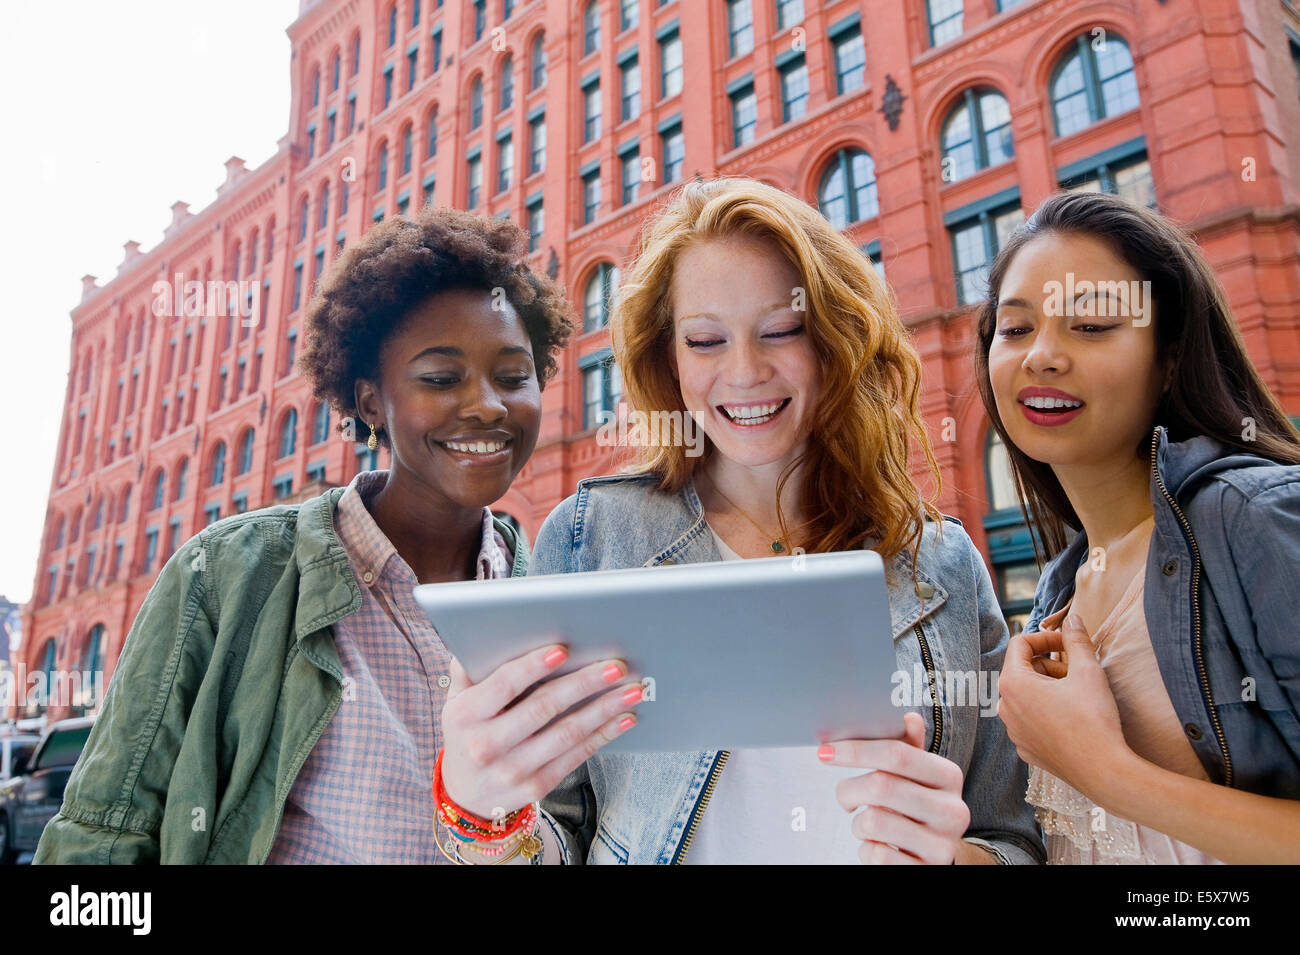 Trois jeunes femmes looking at digital tablet in street Photo Stock